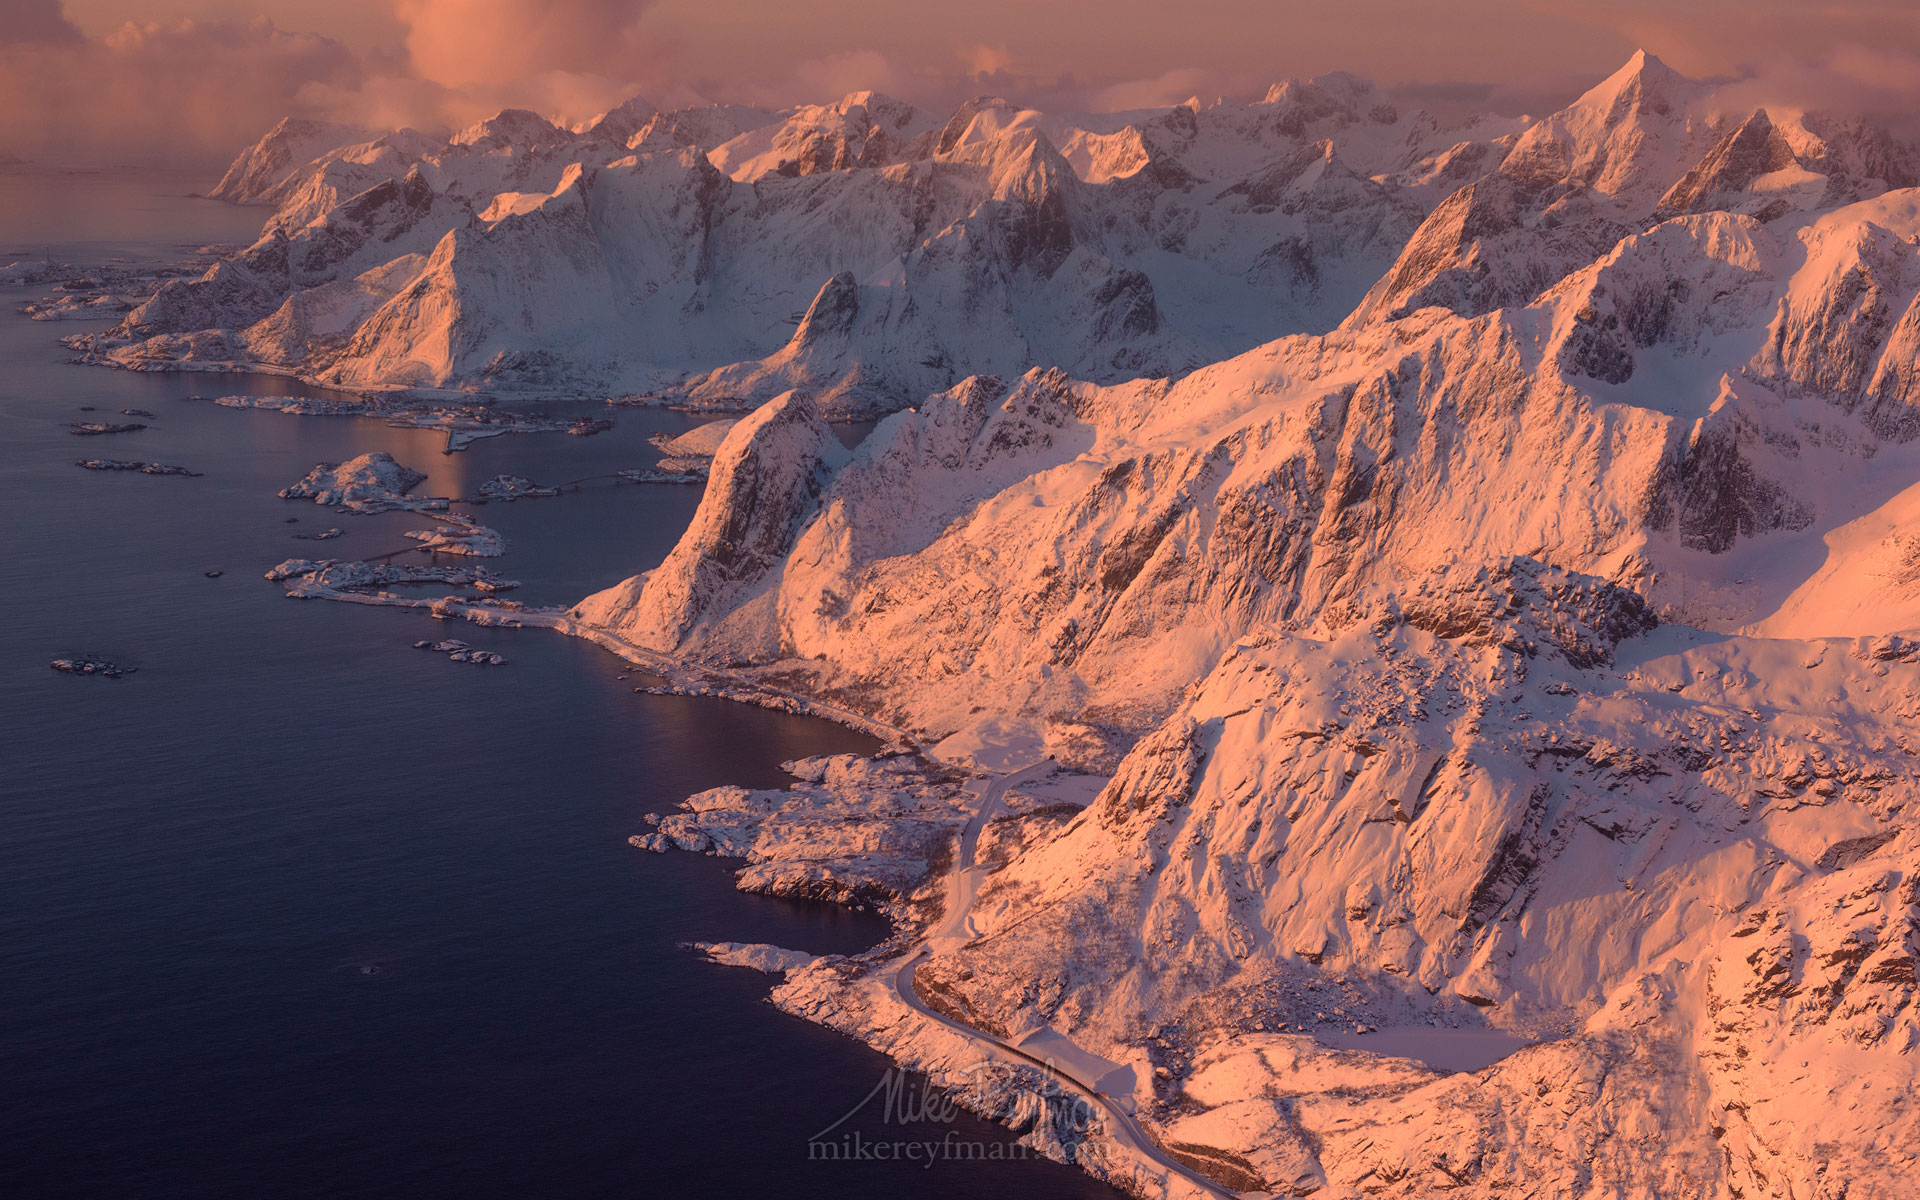 Aerial view of Lofoten archipelago and fishing village of Reine at sunrise. Moskenesoya Island, Lofoten archipelago, Norway. LF-MRD1E1449 - Lofoten Archipelago in Winter, Arctic Norway - Mike Reyfman Photography